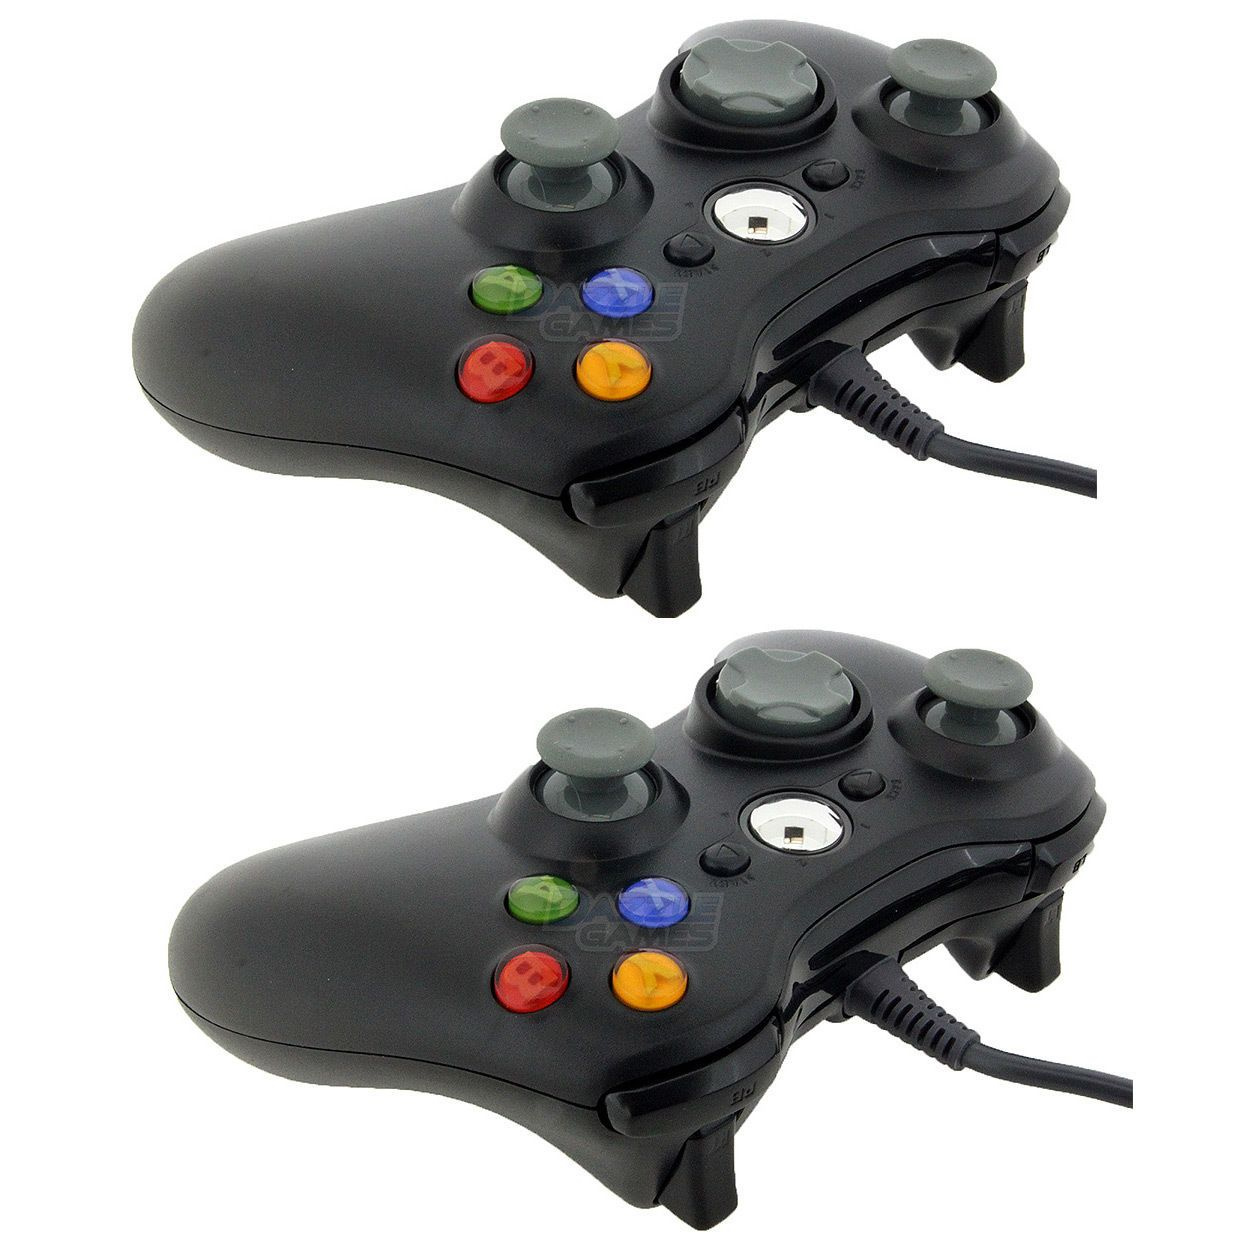 2x New Black Wired USB Game Pad Controller For Microsoft Xbox 360 PC ...